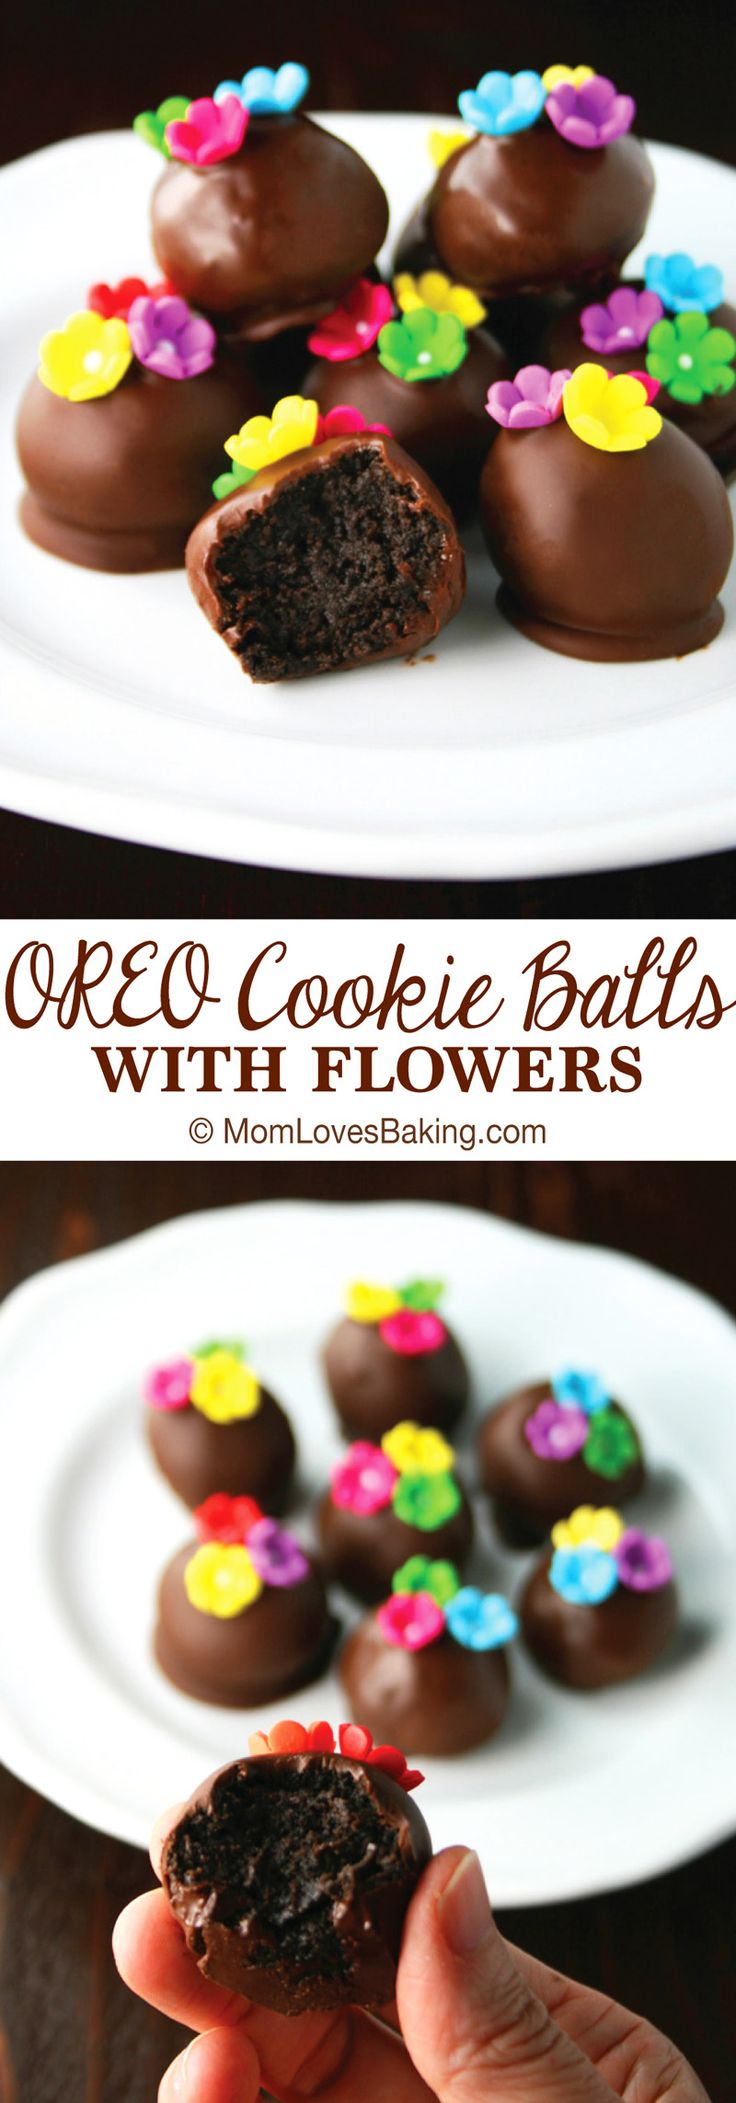 Do you need a super quick SPRING dessert to bring to a party? OREO Cookie Balls w/ Flowers are so cute and easy to make. And they taste like fancy store-bought chocolate truffles! #OREOCookieBalls [ad]